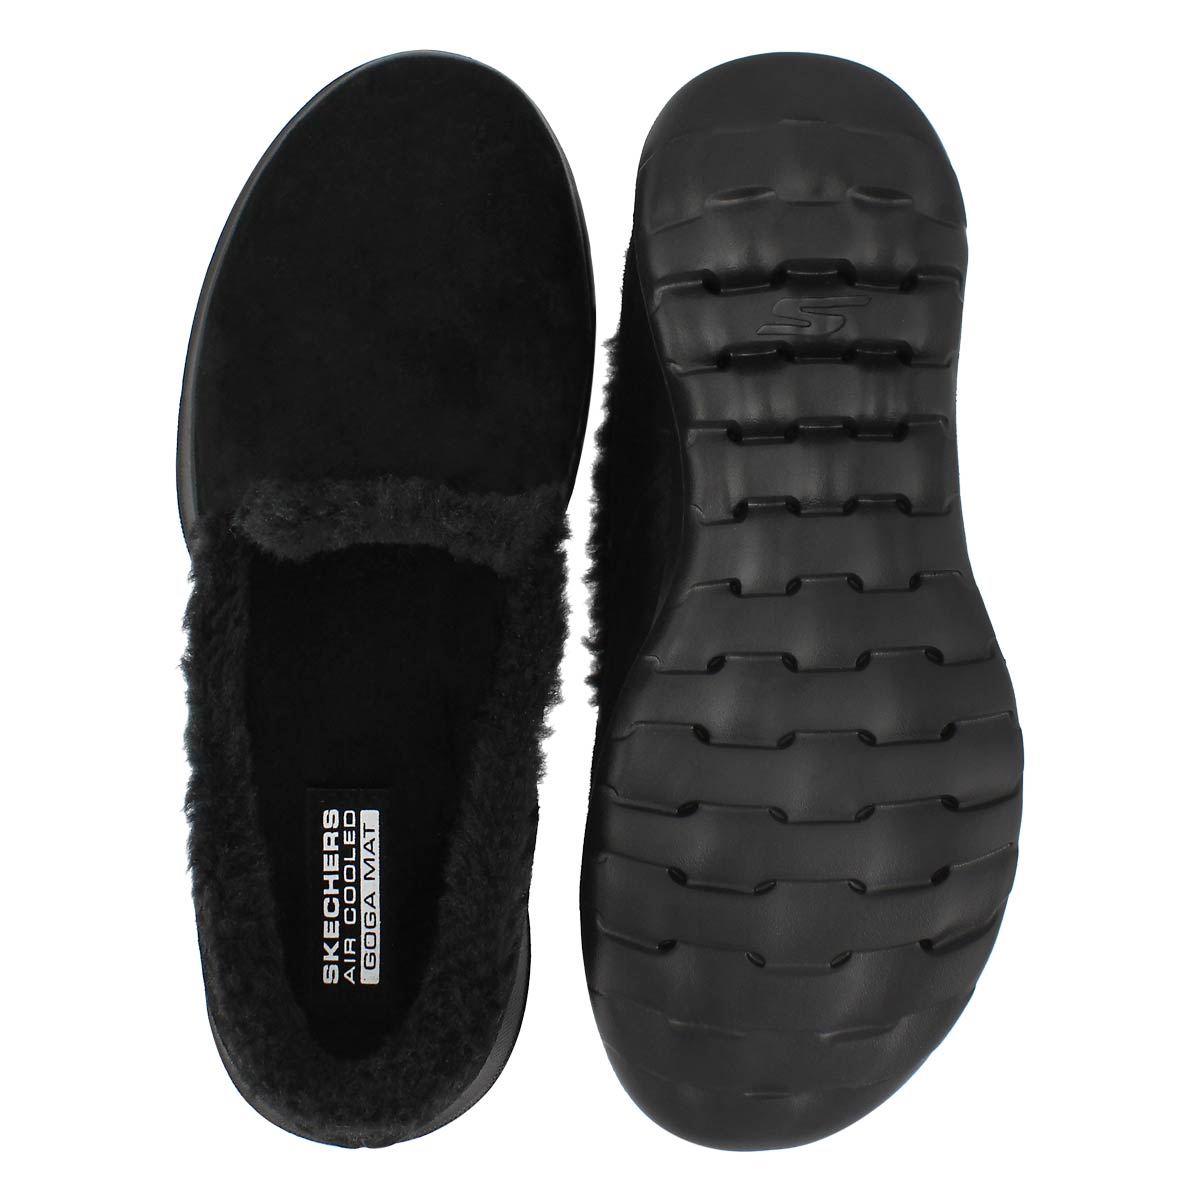 Lds GOwalk Lite blk slip on lined shoe